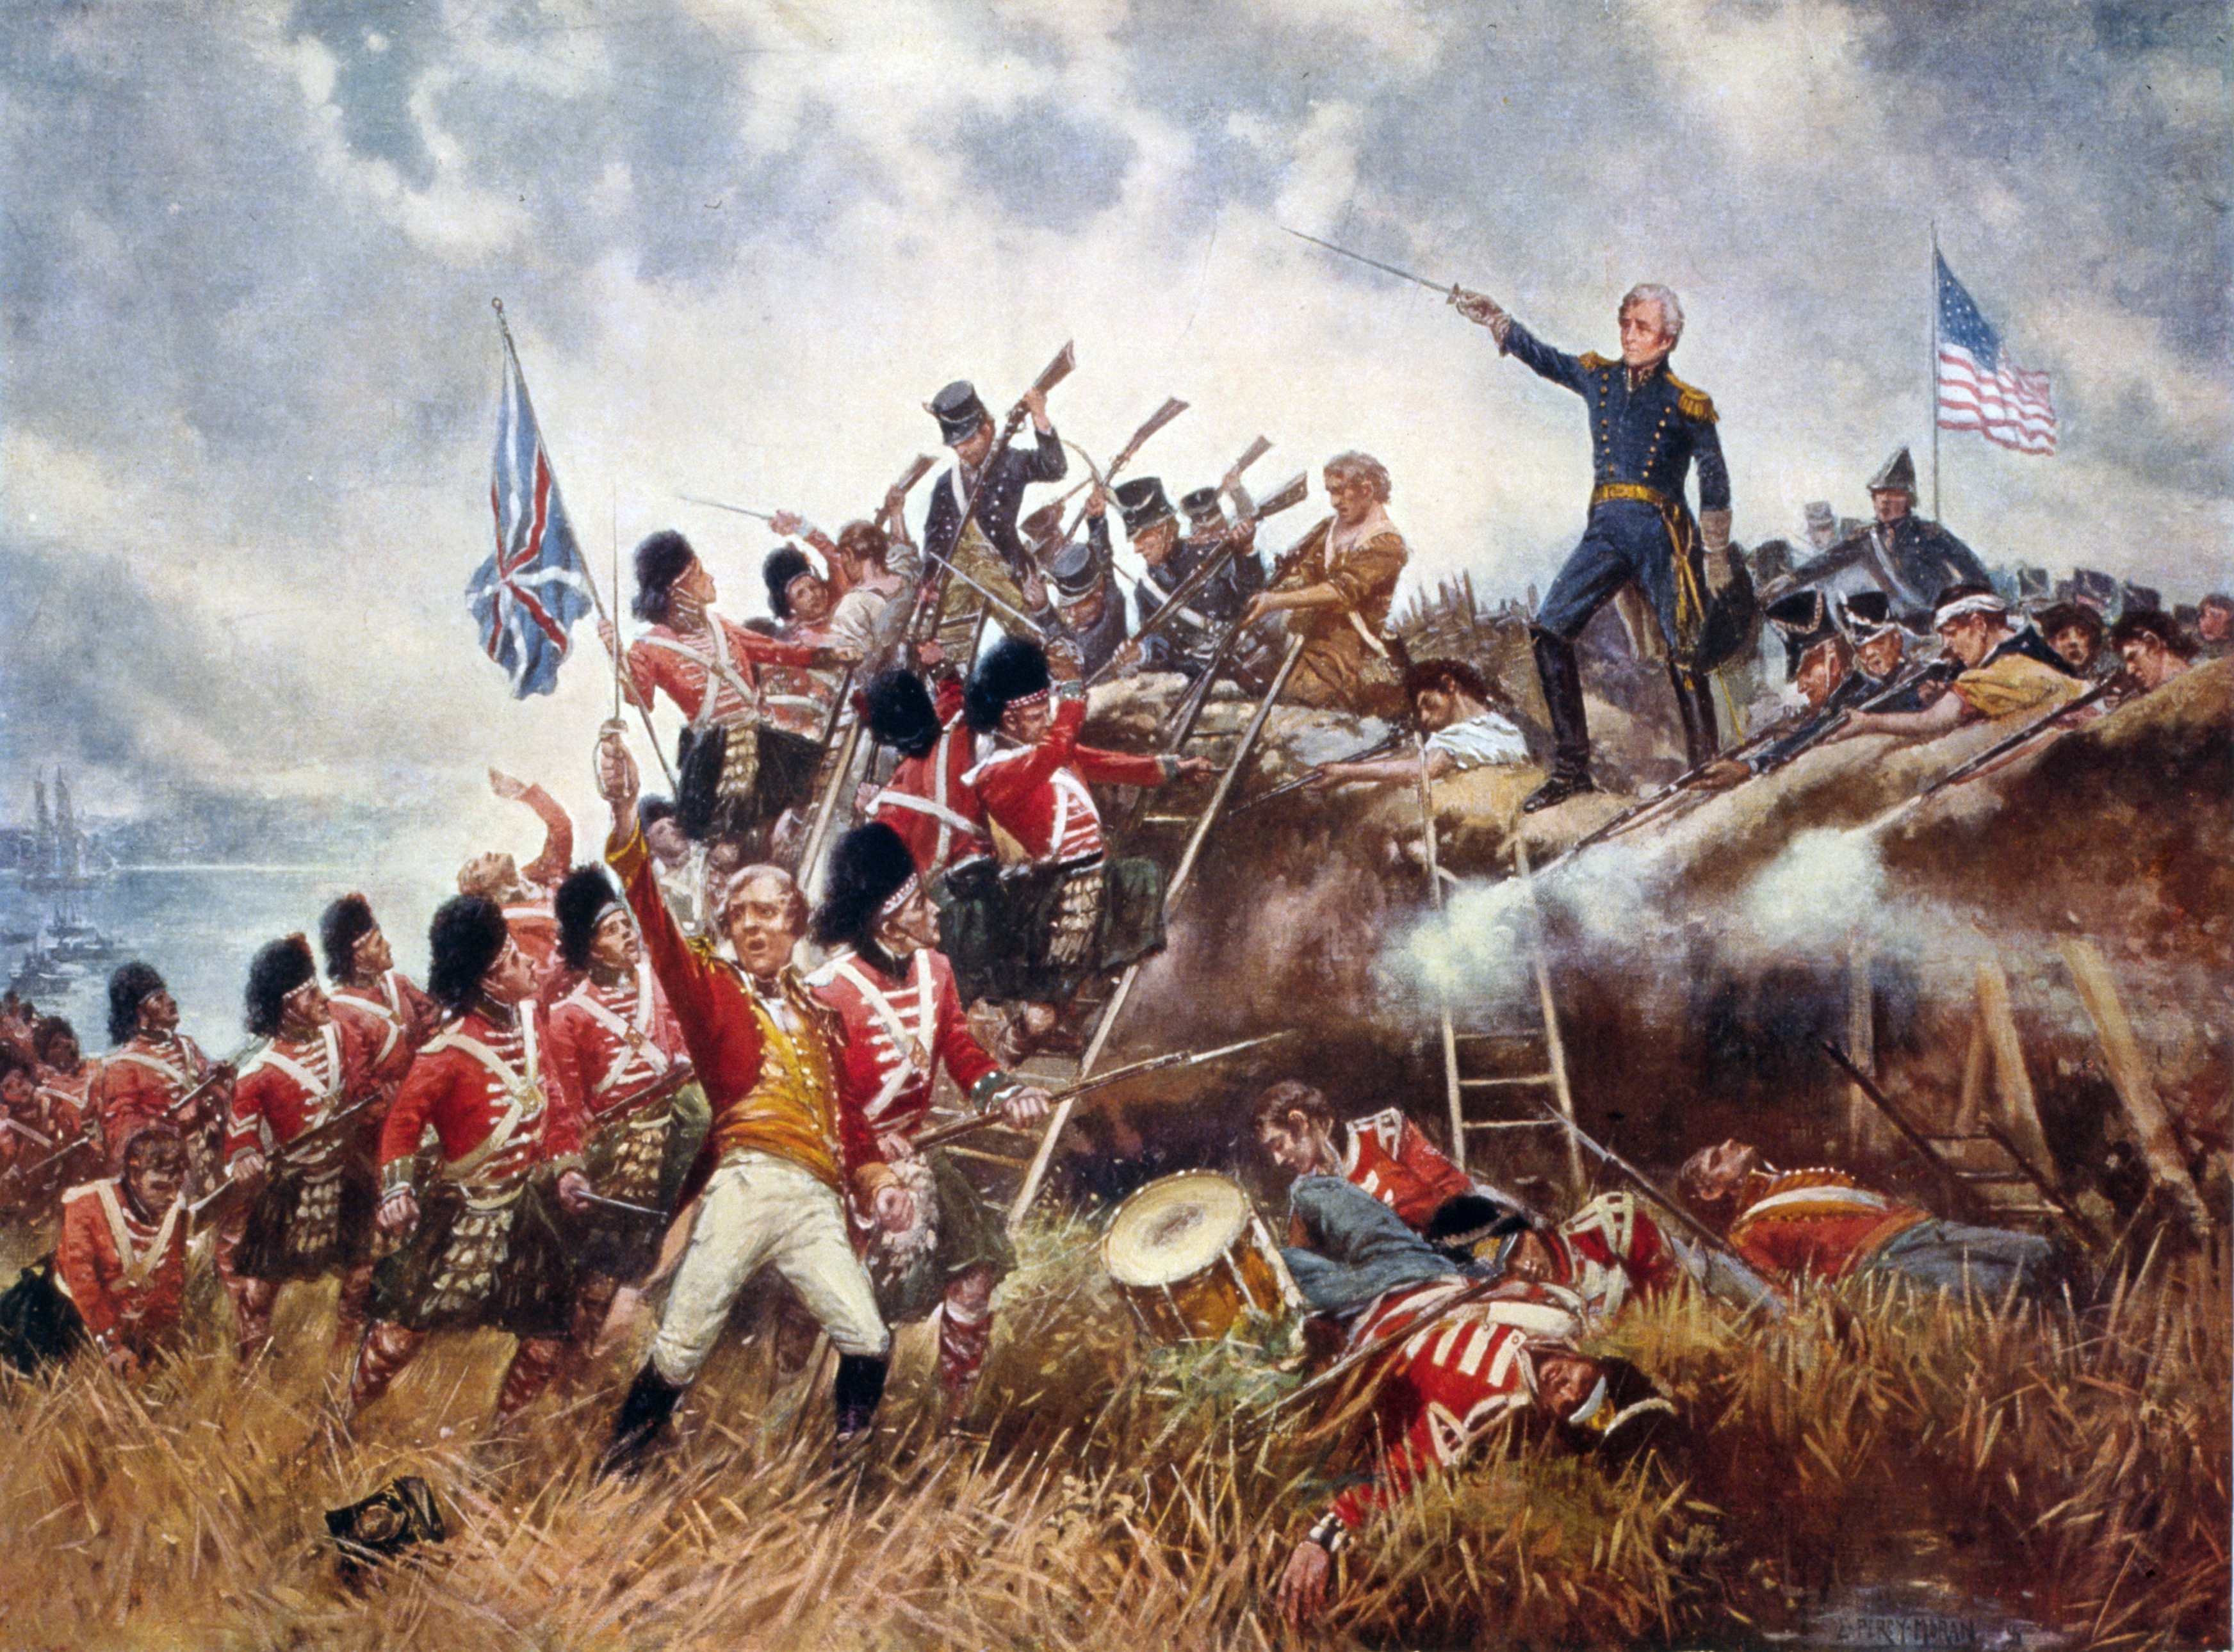 The Battle of New Orleans - Andrew Jackson wins the final battle of the War of